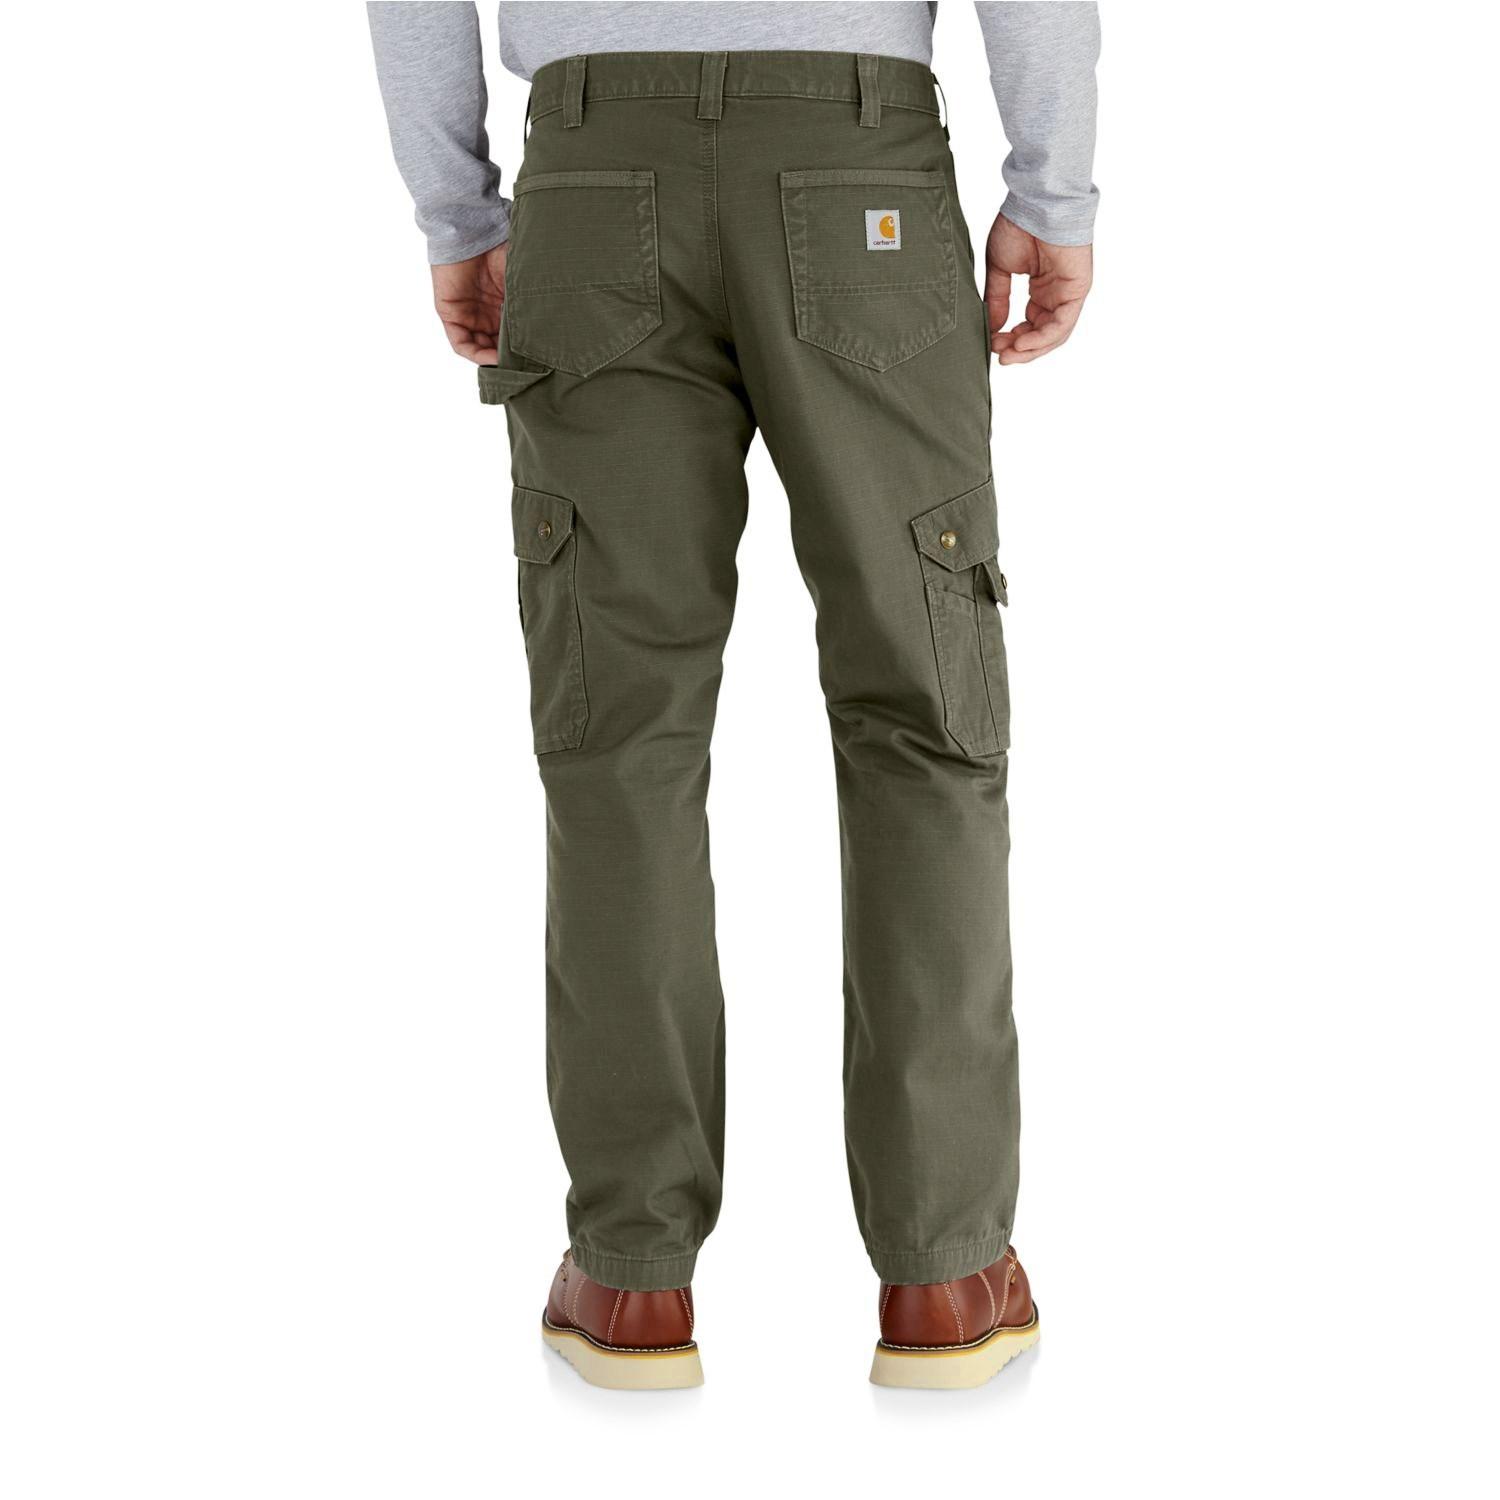 If you're looking for work pants, Construction Gear is the first and last place you should look. The lineup of contractor's work pants we carry is unrivaled and includes famous brands such as .